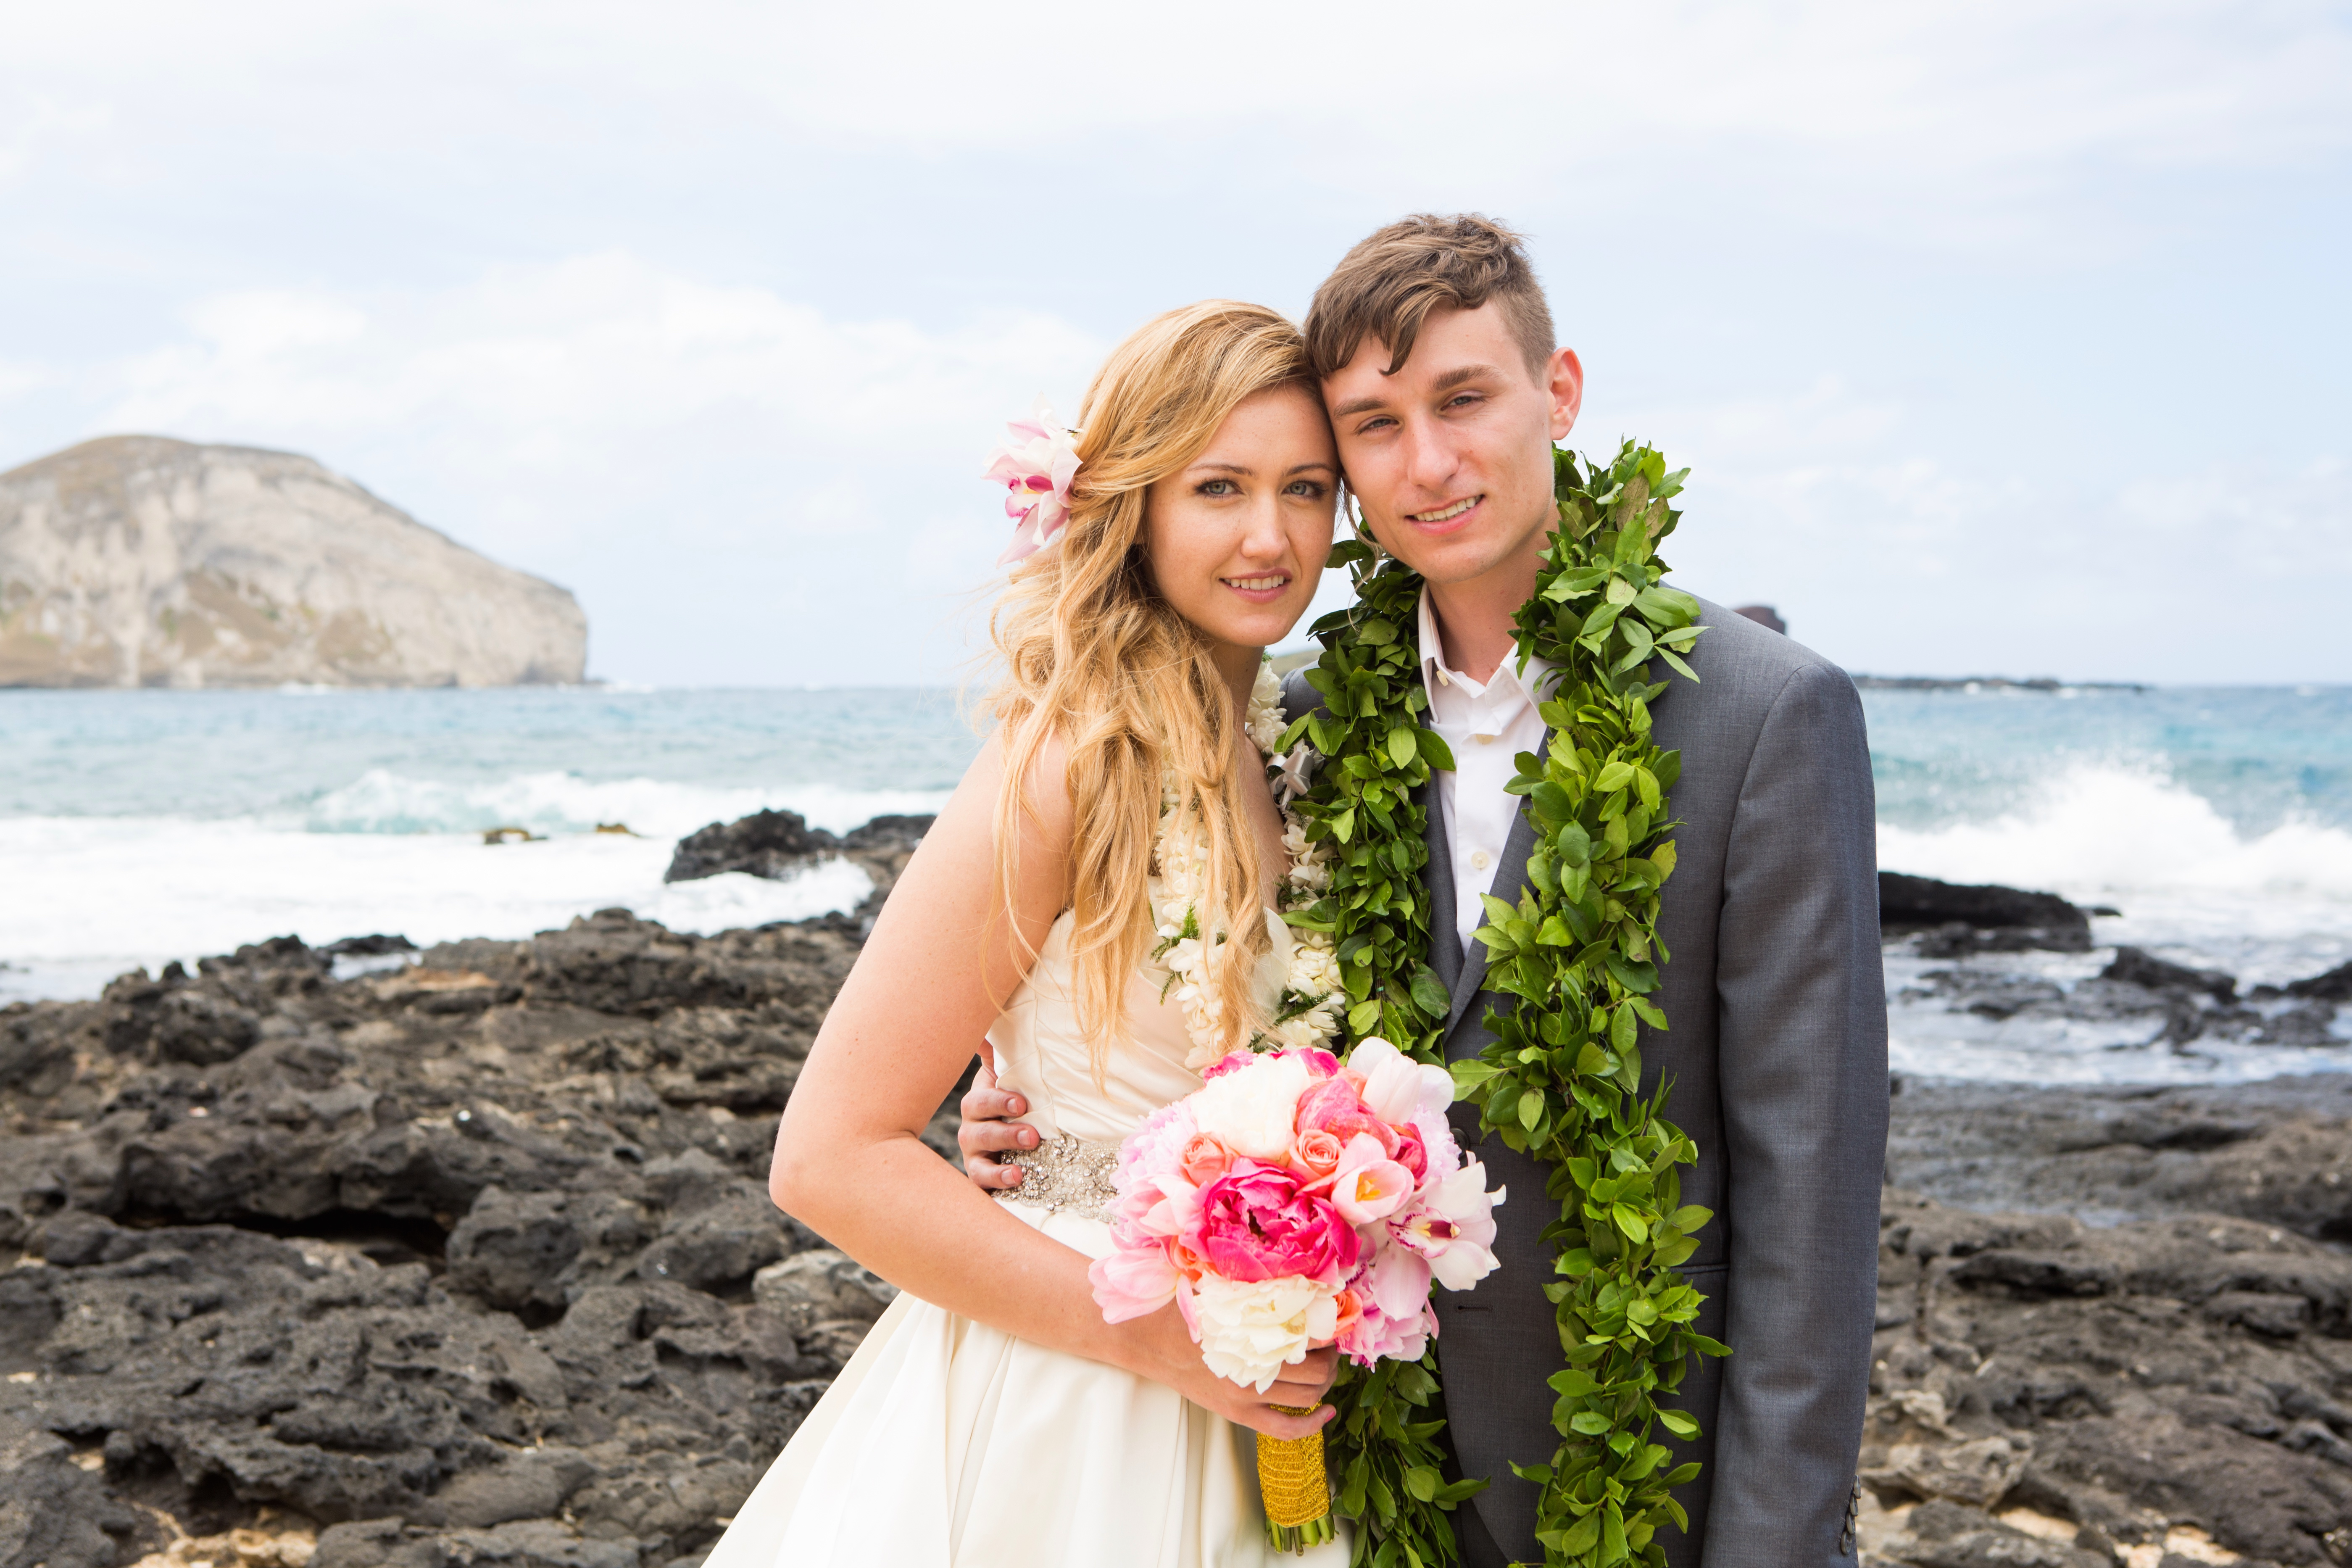 Hawaiian Wedding Pictre Romance -4